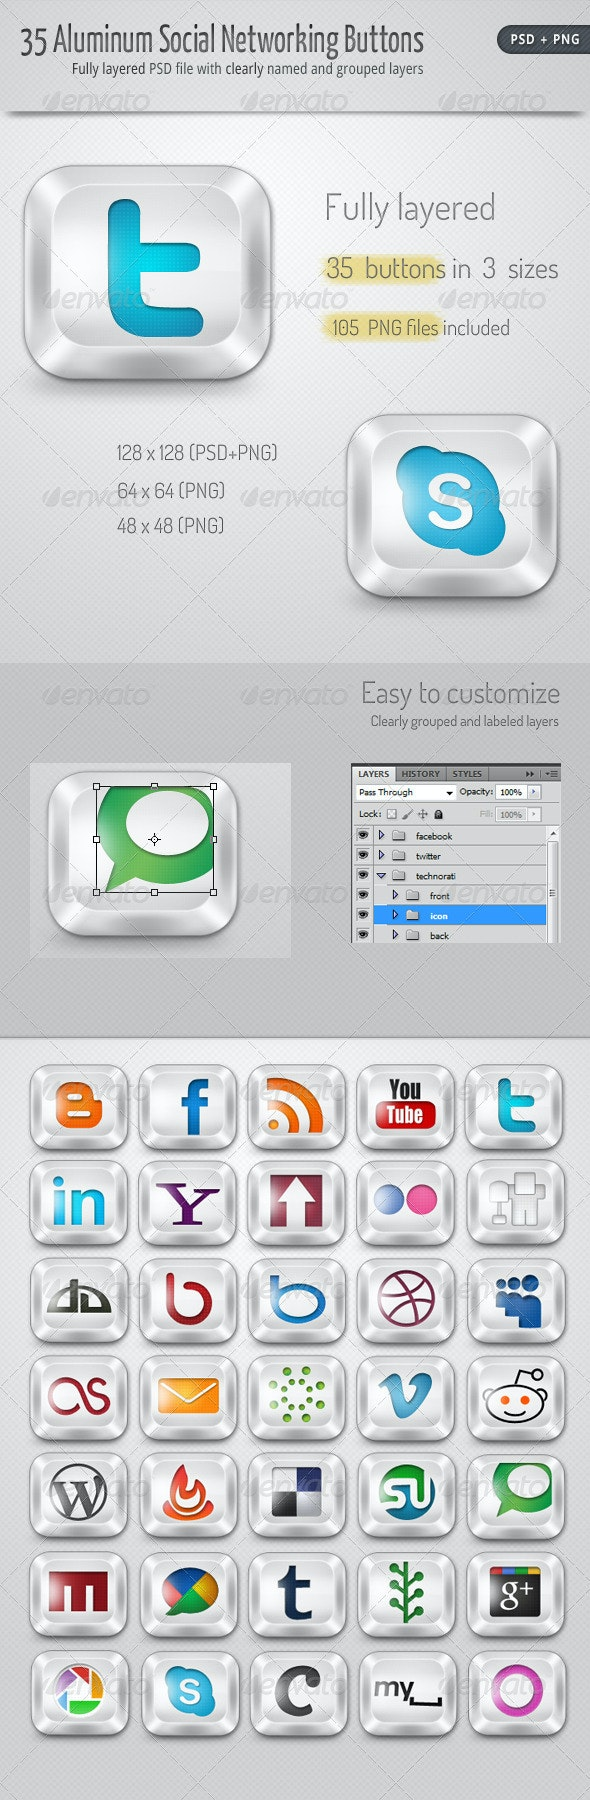 30 Aluminum Social Networking Buttons - Web Icons